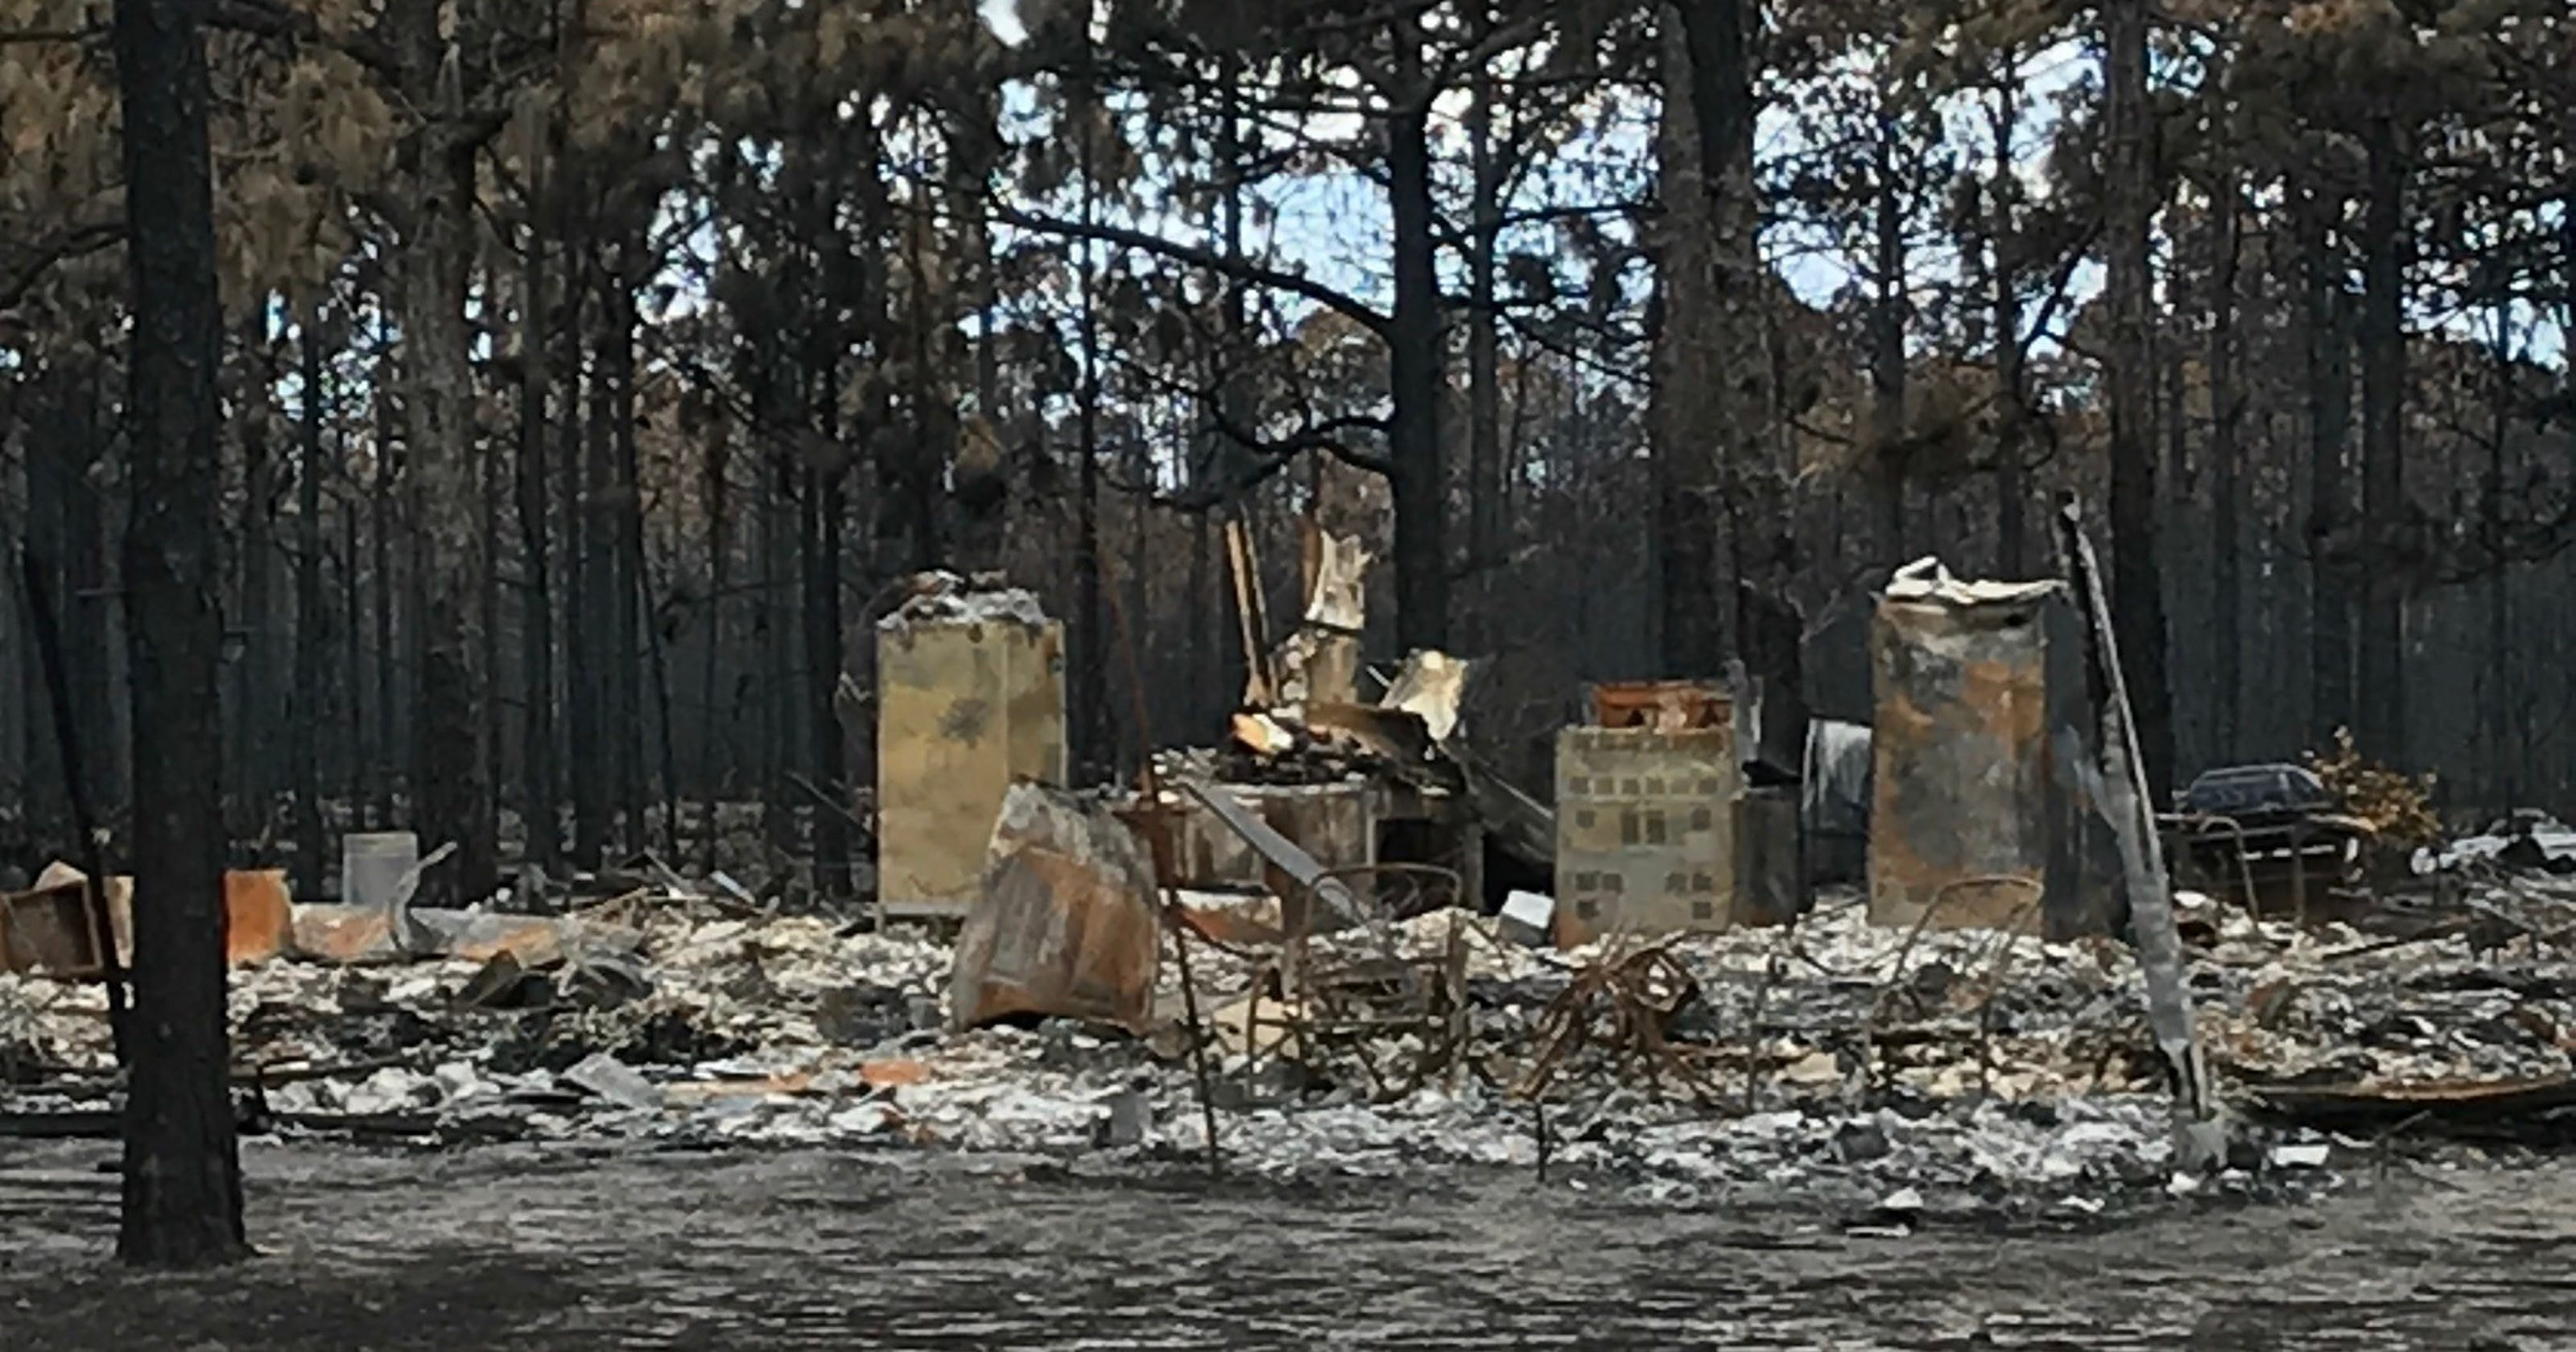 Tallahassee crews to help clean up debris from Eastpoint wildfire